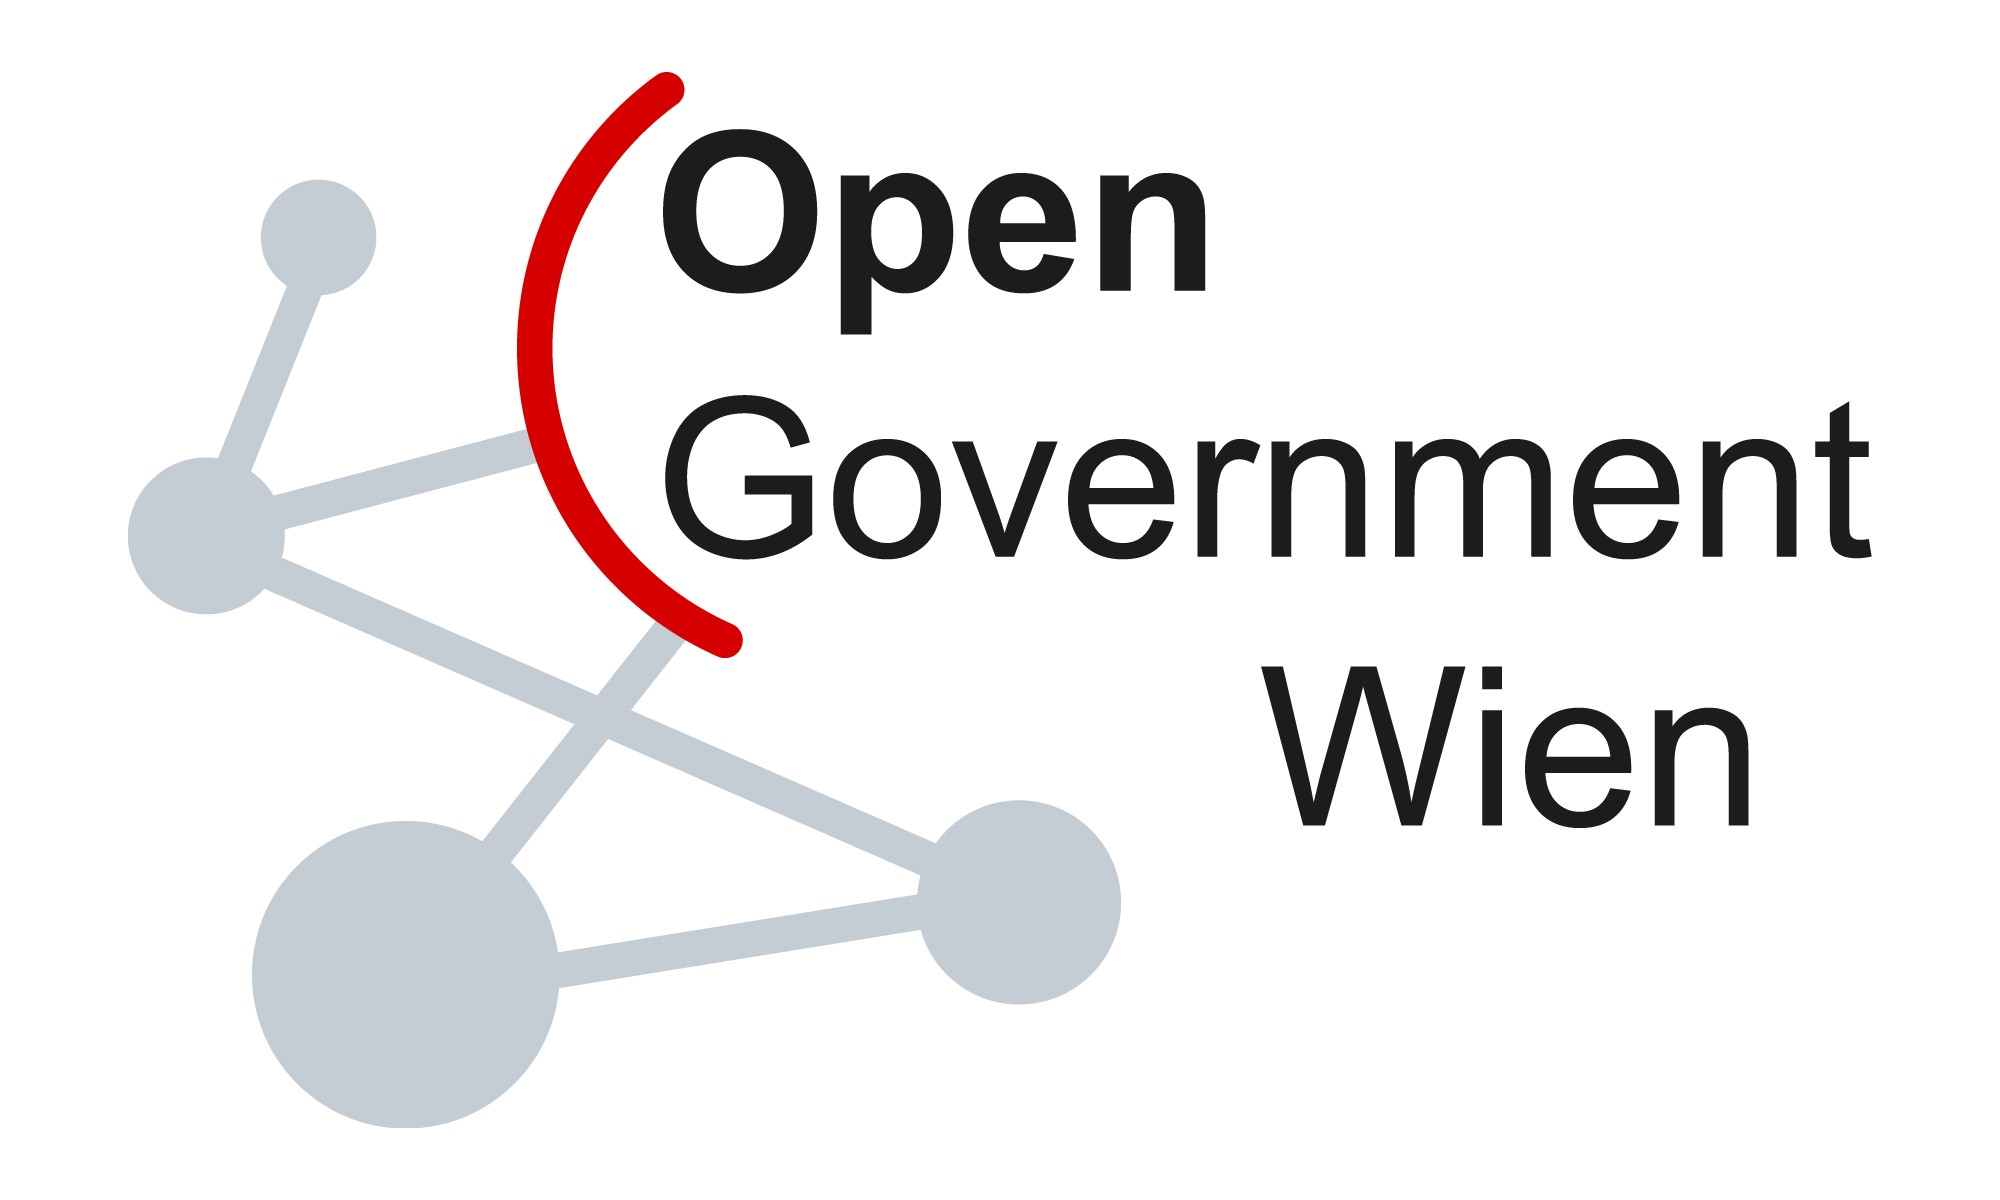 Open Government Wien